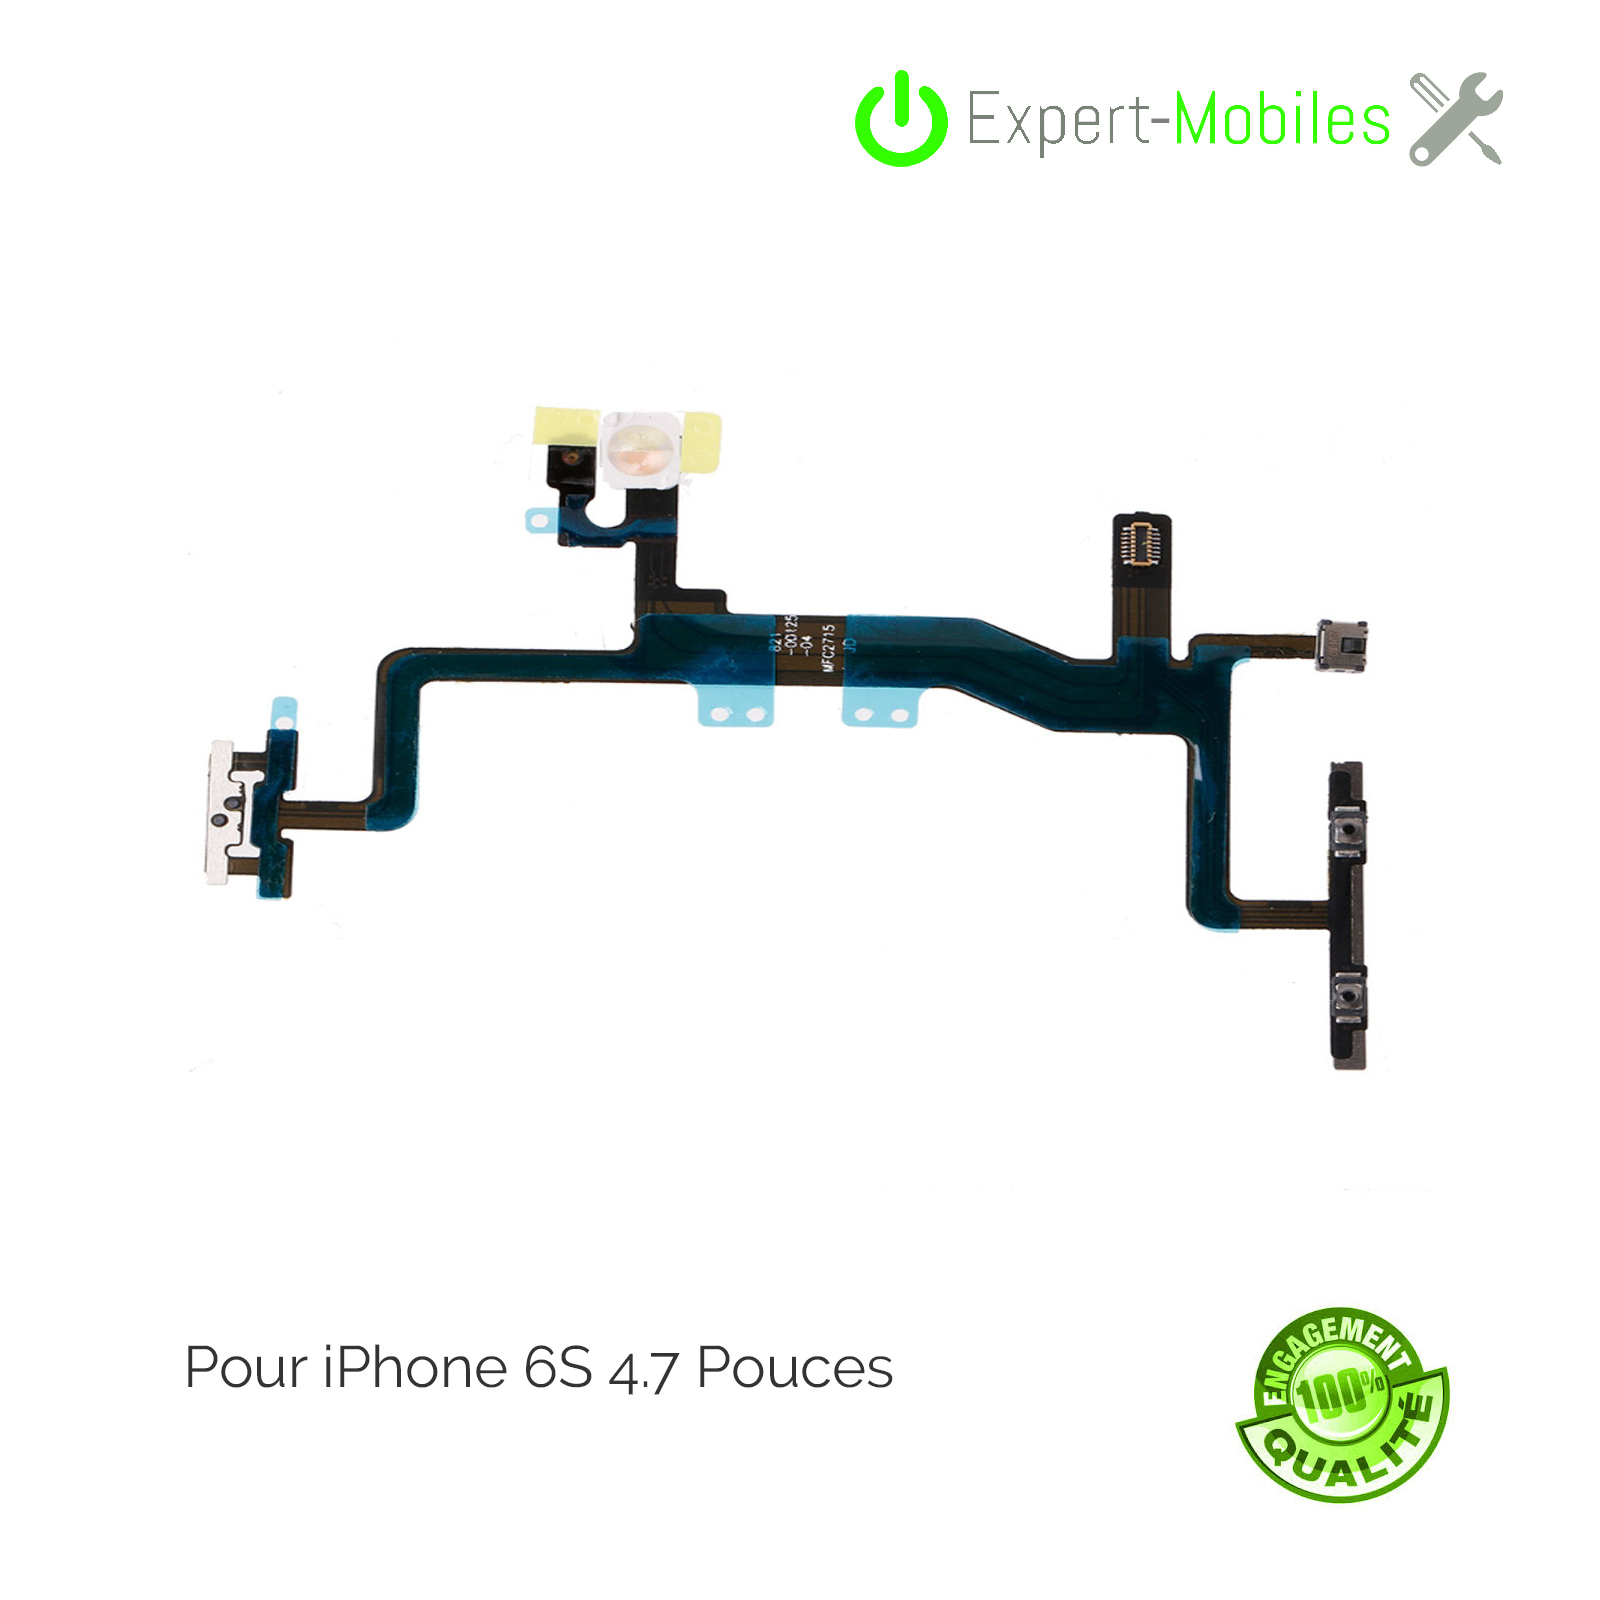 Nappe on off iphone 6s em 1 expert mobiles - Reparation telephone lorient ...